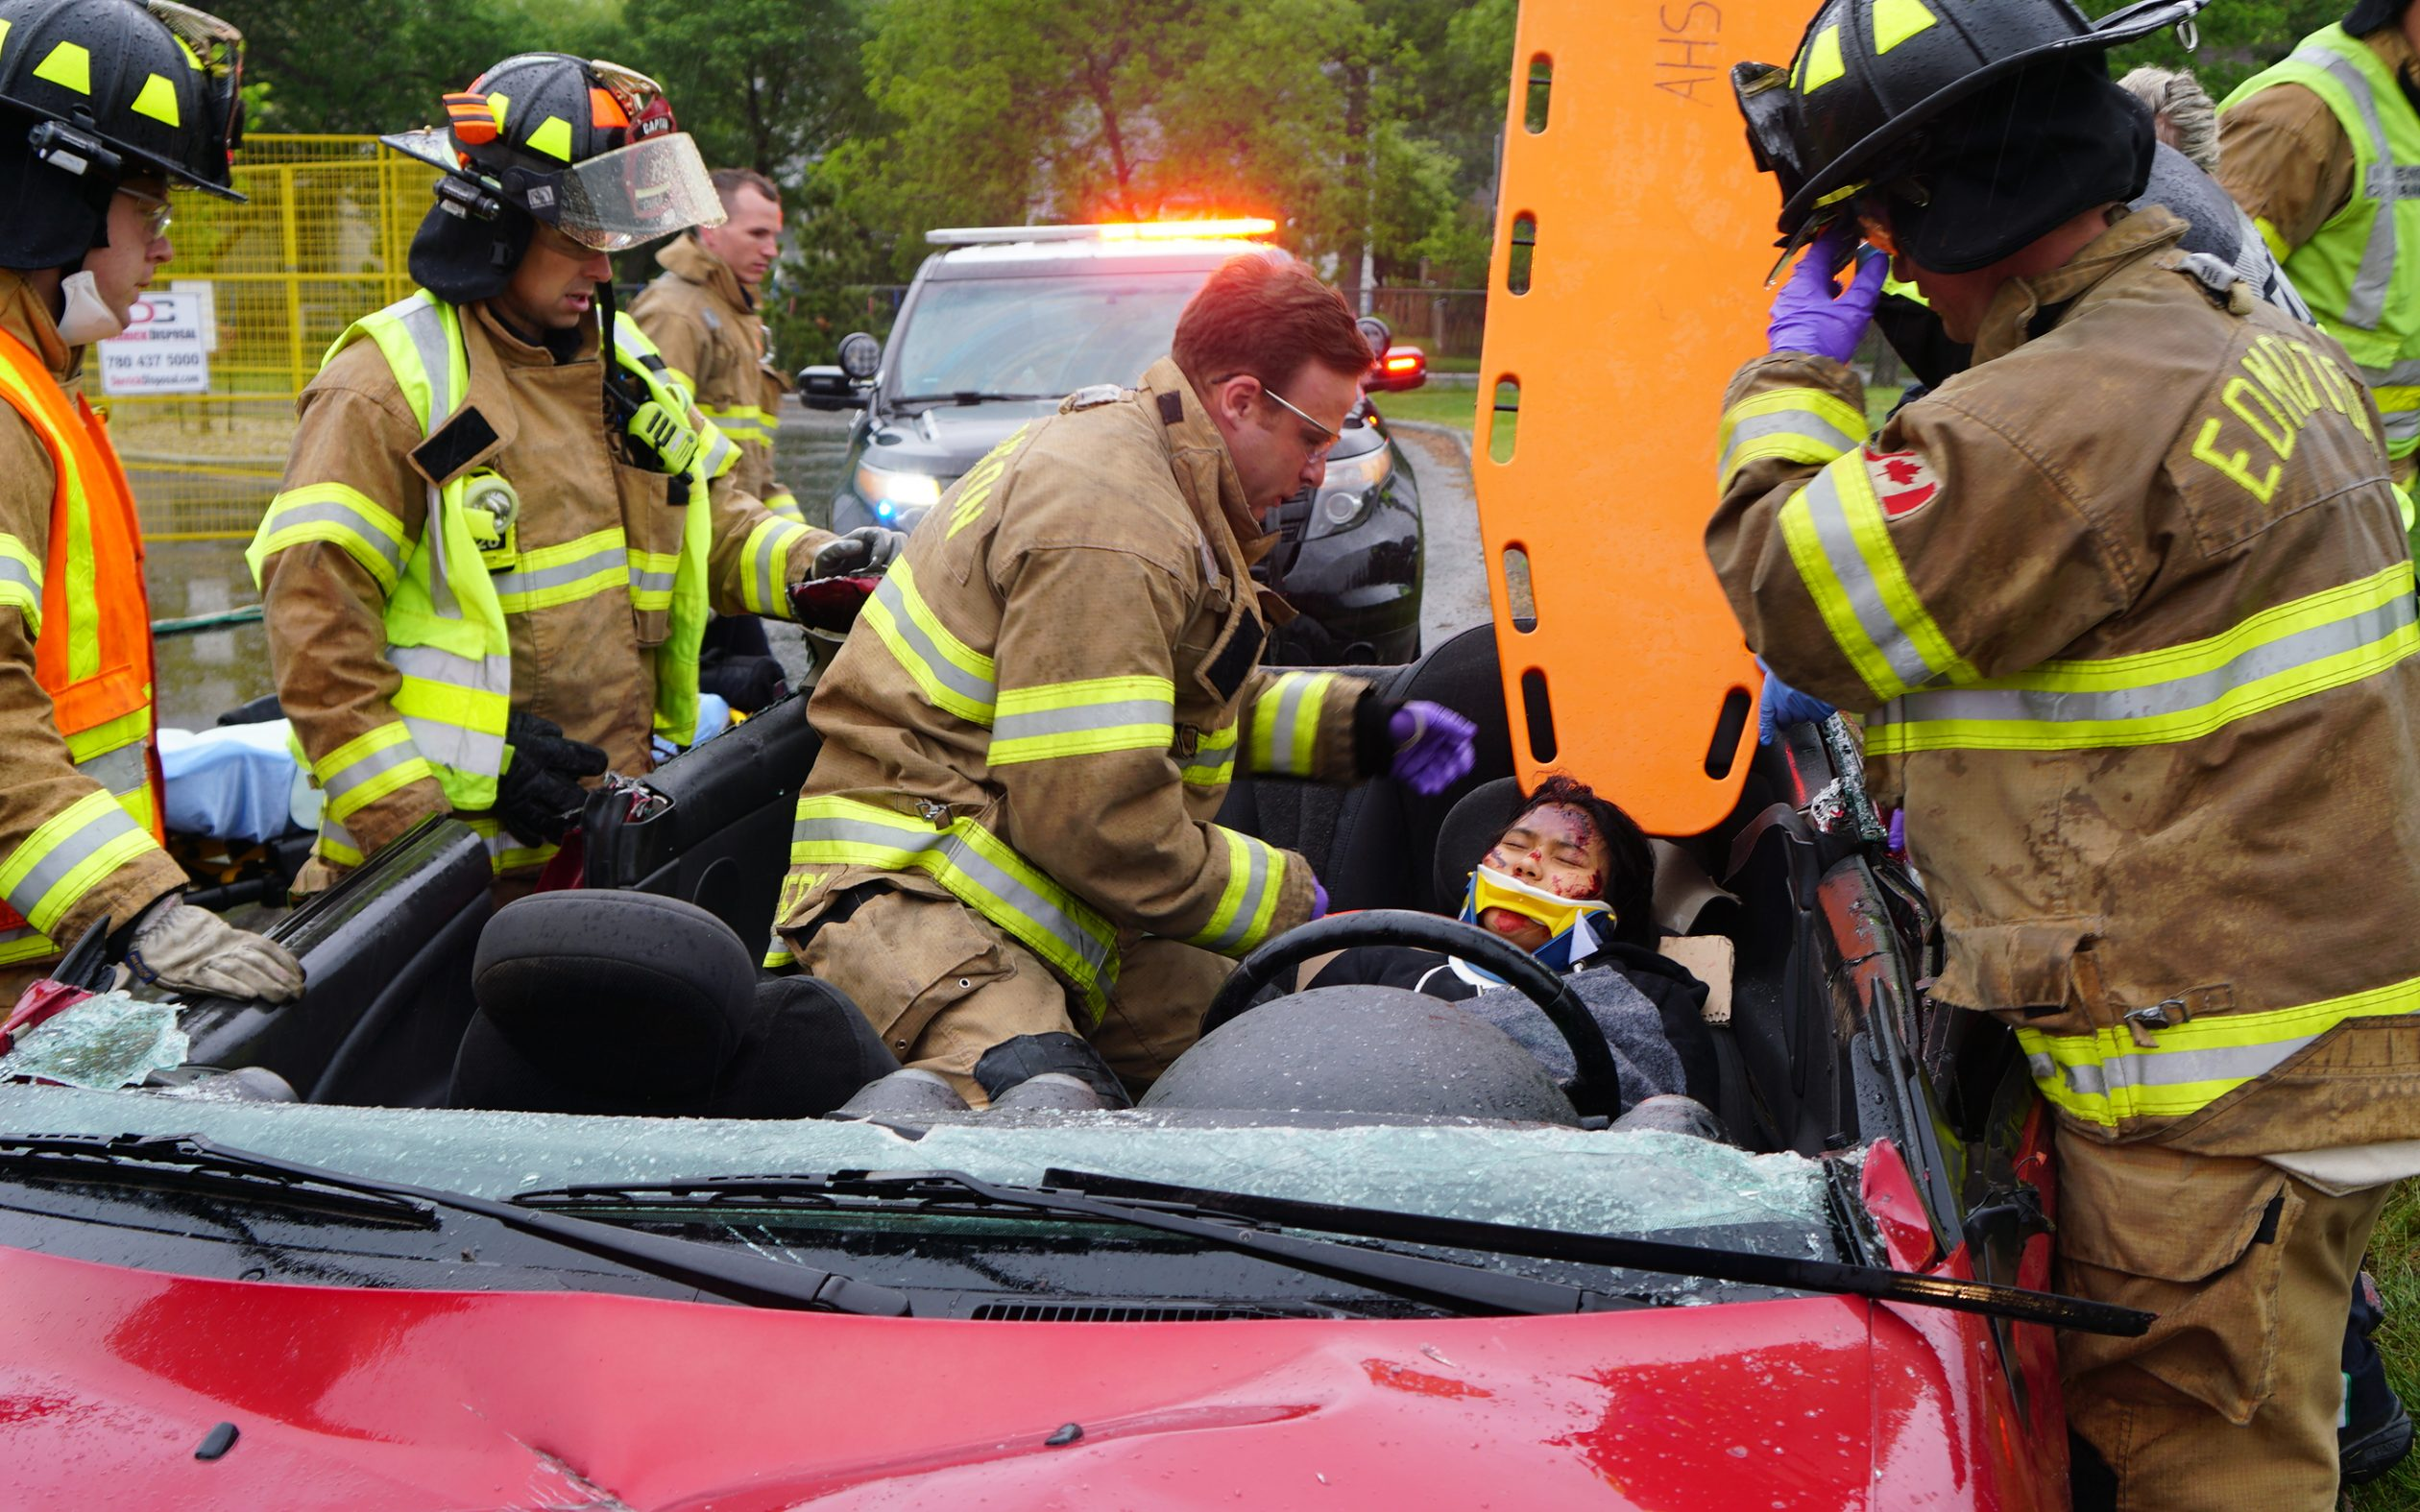 Simulated Car Crash Prompts Sober Thoughts In Students About Drunk